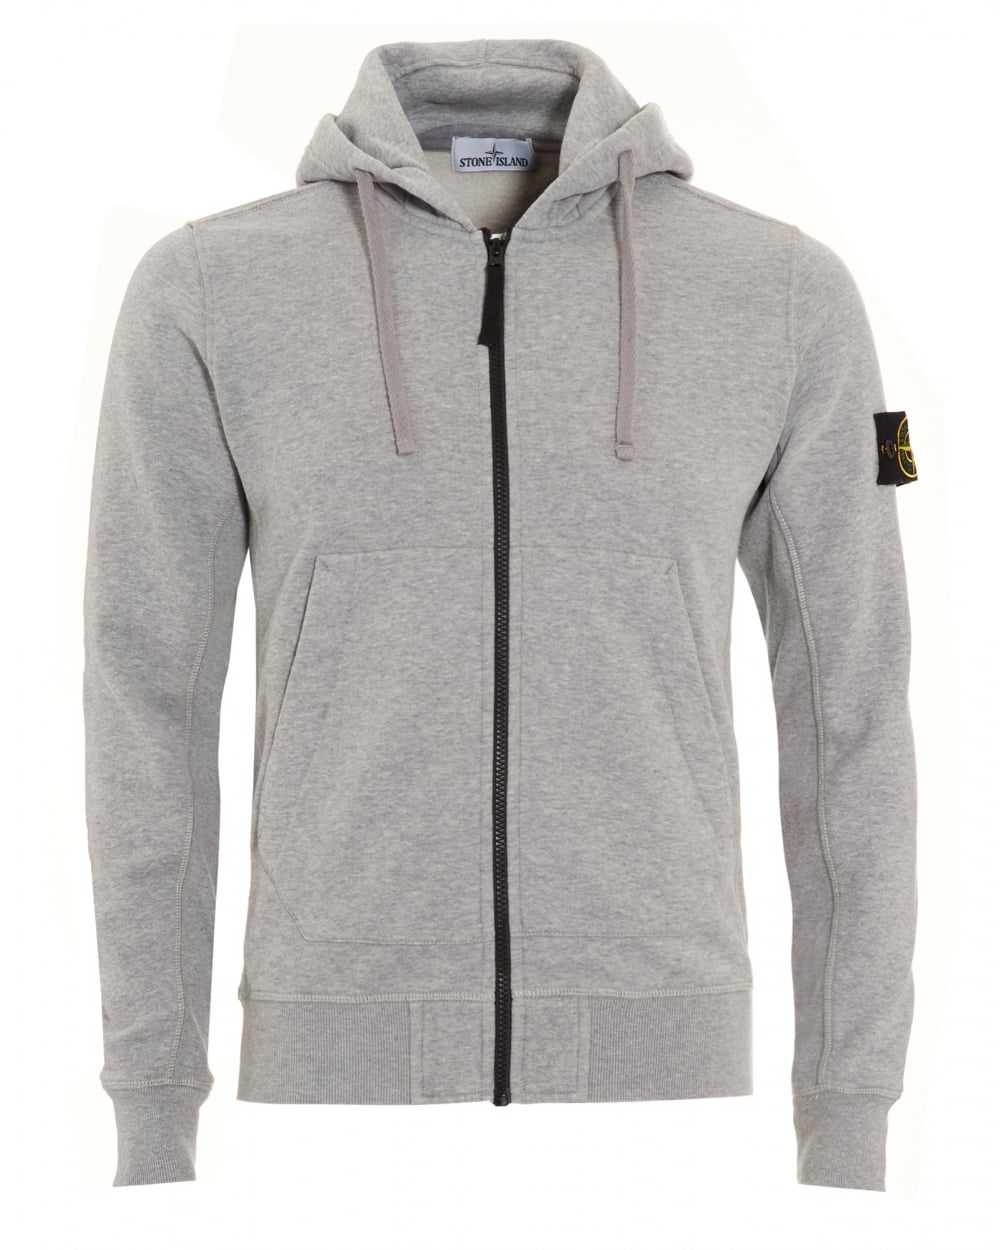 stone island mens hoodie grey dust zip hooded sweatshirt. Black Bedroom Furniture Sets. Home Design Ideas